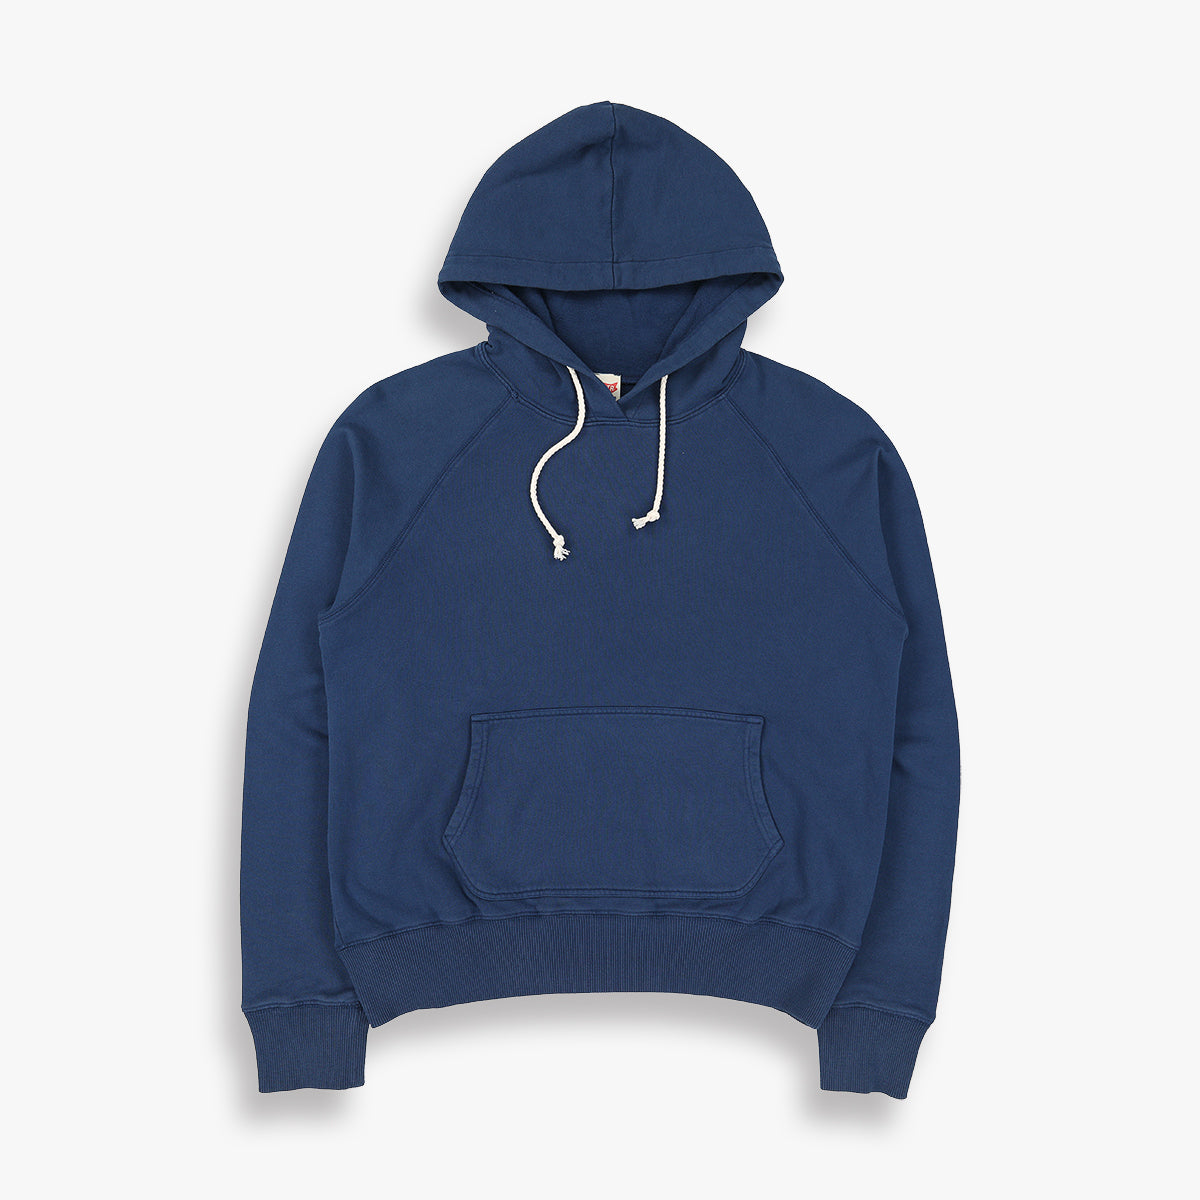 TSPTR Base Range Hooded Sweatshirt